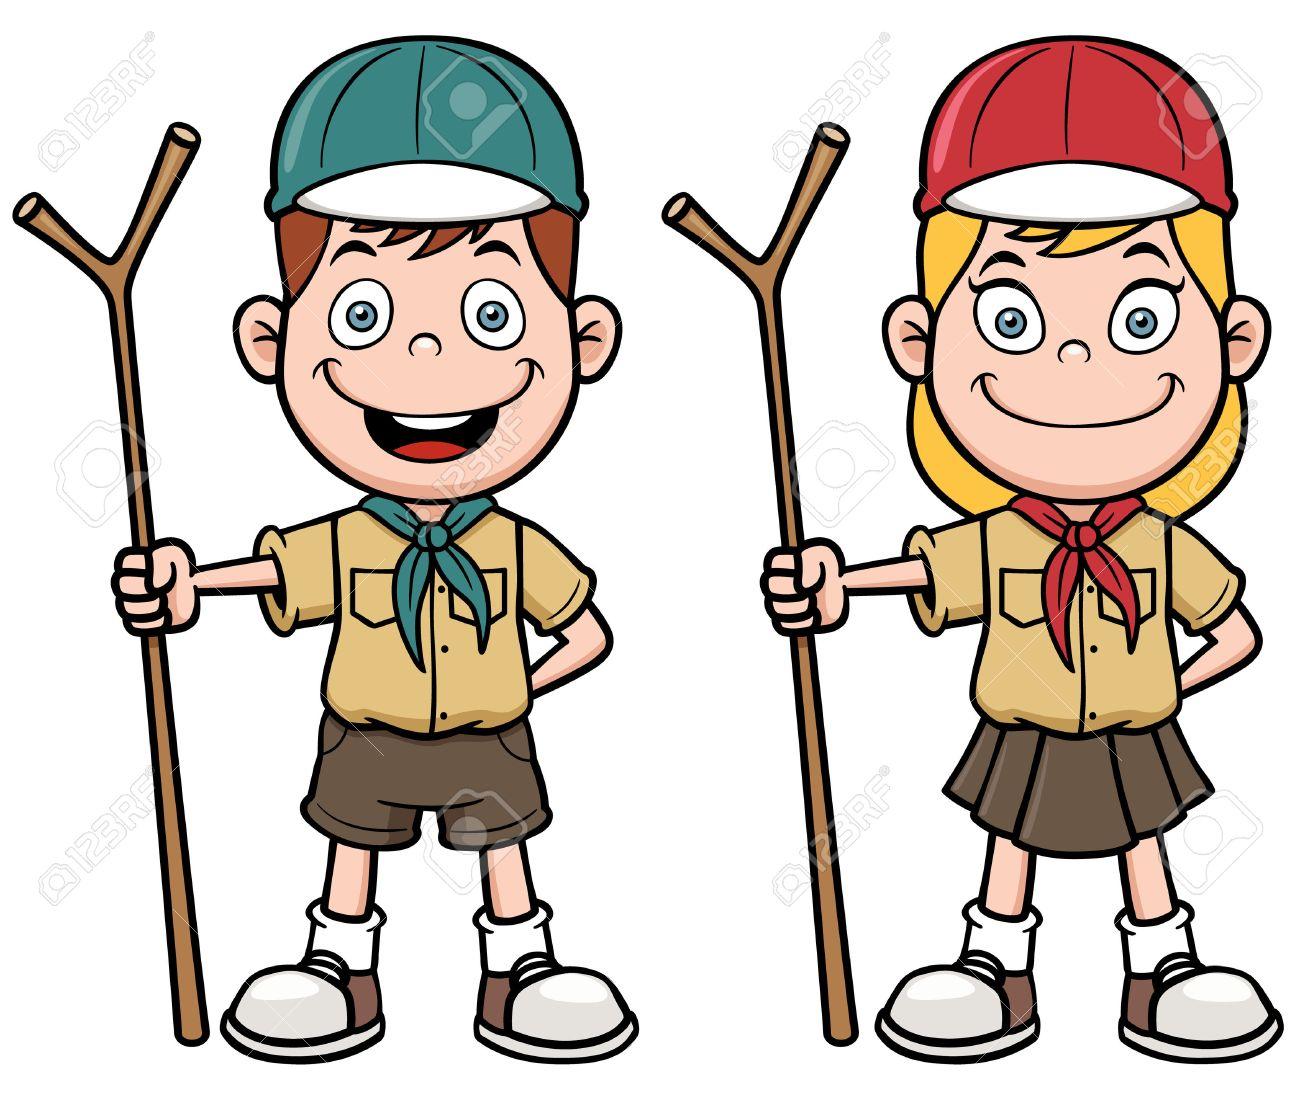 hight resolution of 1300x1104 2 317 boy scout cliparts stock vector and royalty free boy scout